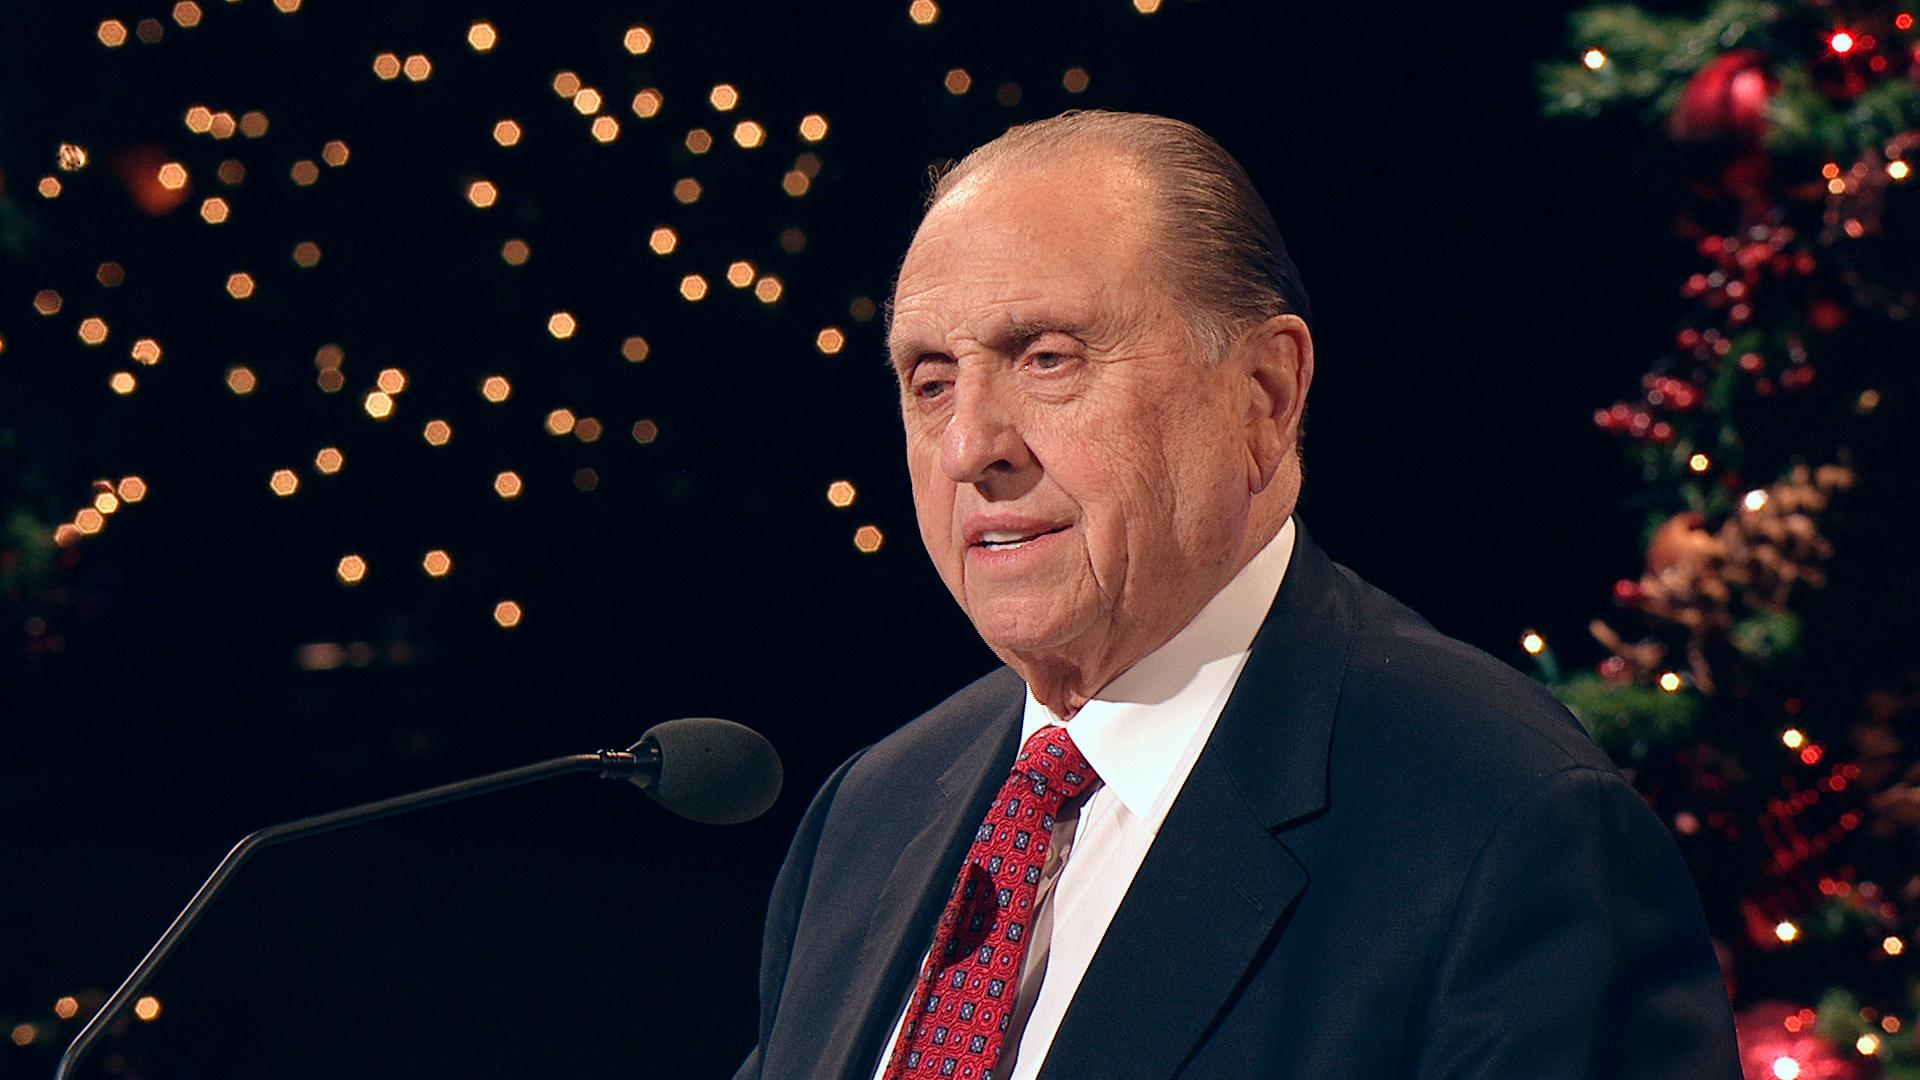 President Monson Shares One of His Most Memorable Thanksgivings